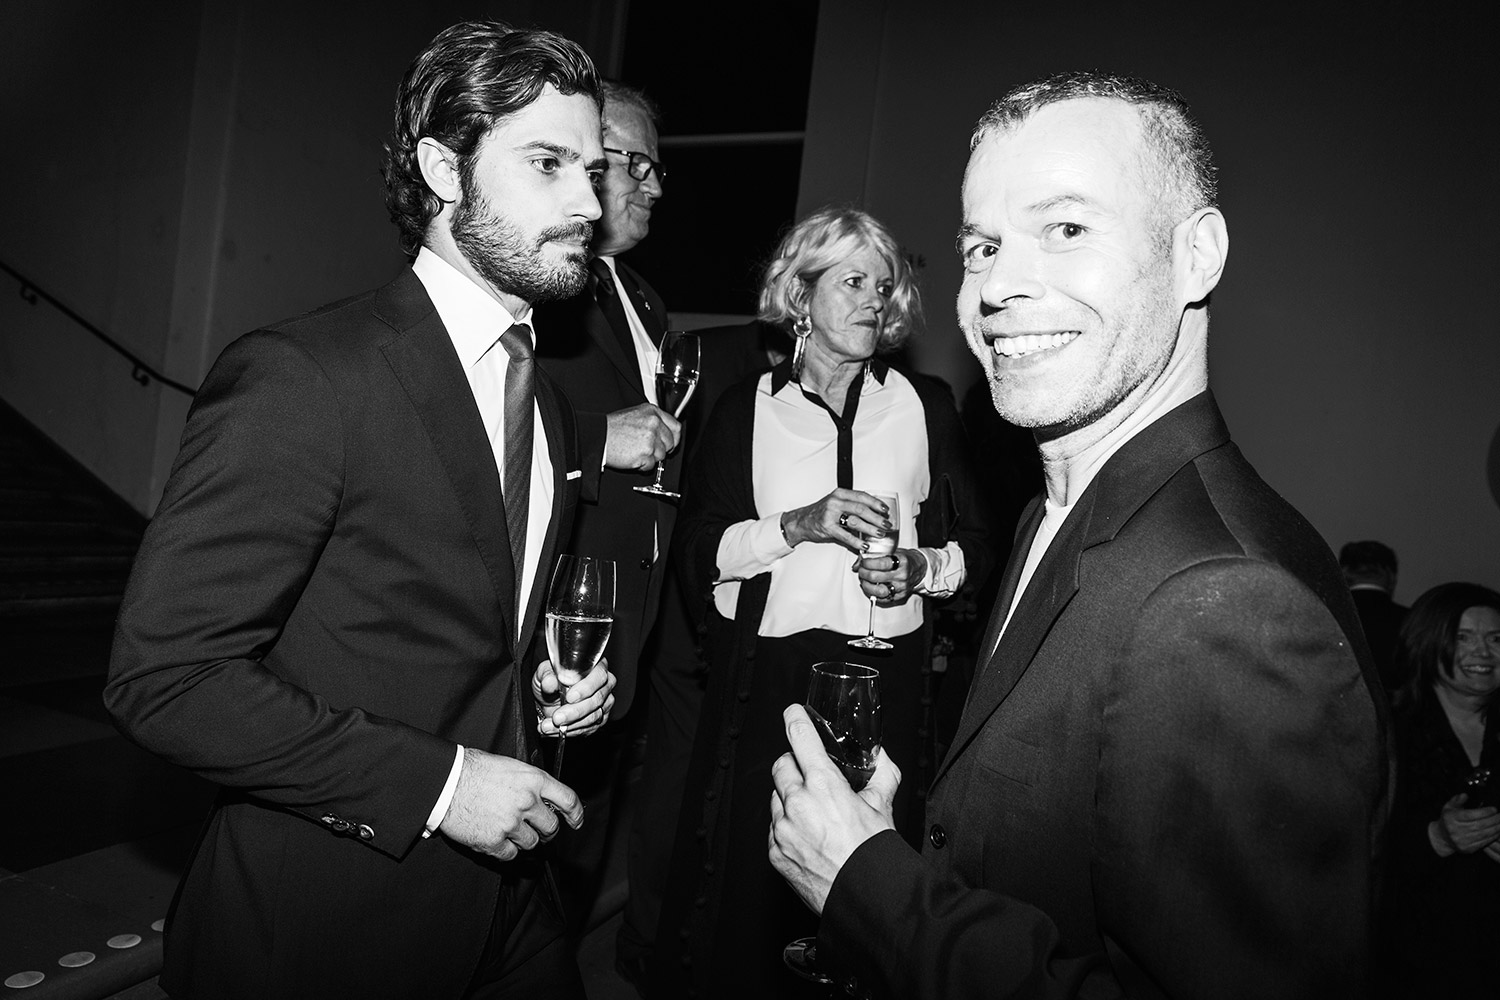 HRH Prince Carl Philip & Wolfgang Tillmans Photo: Emma Svensson/Hasselblad Foundation